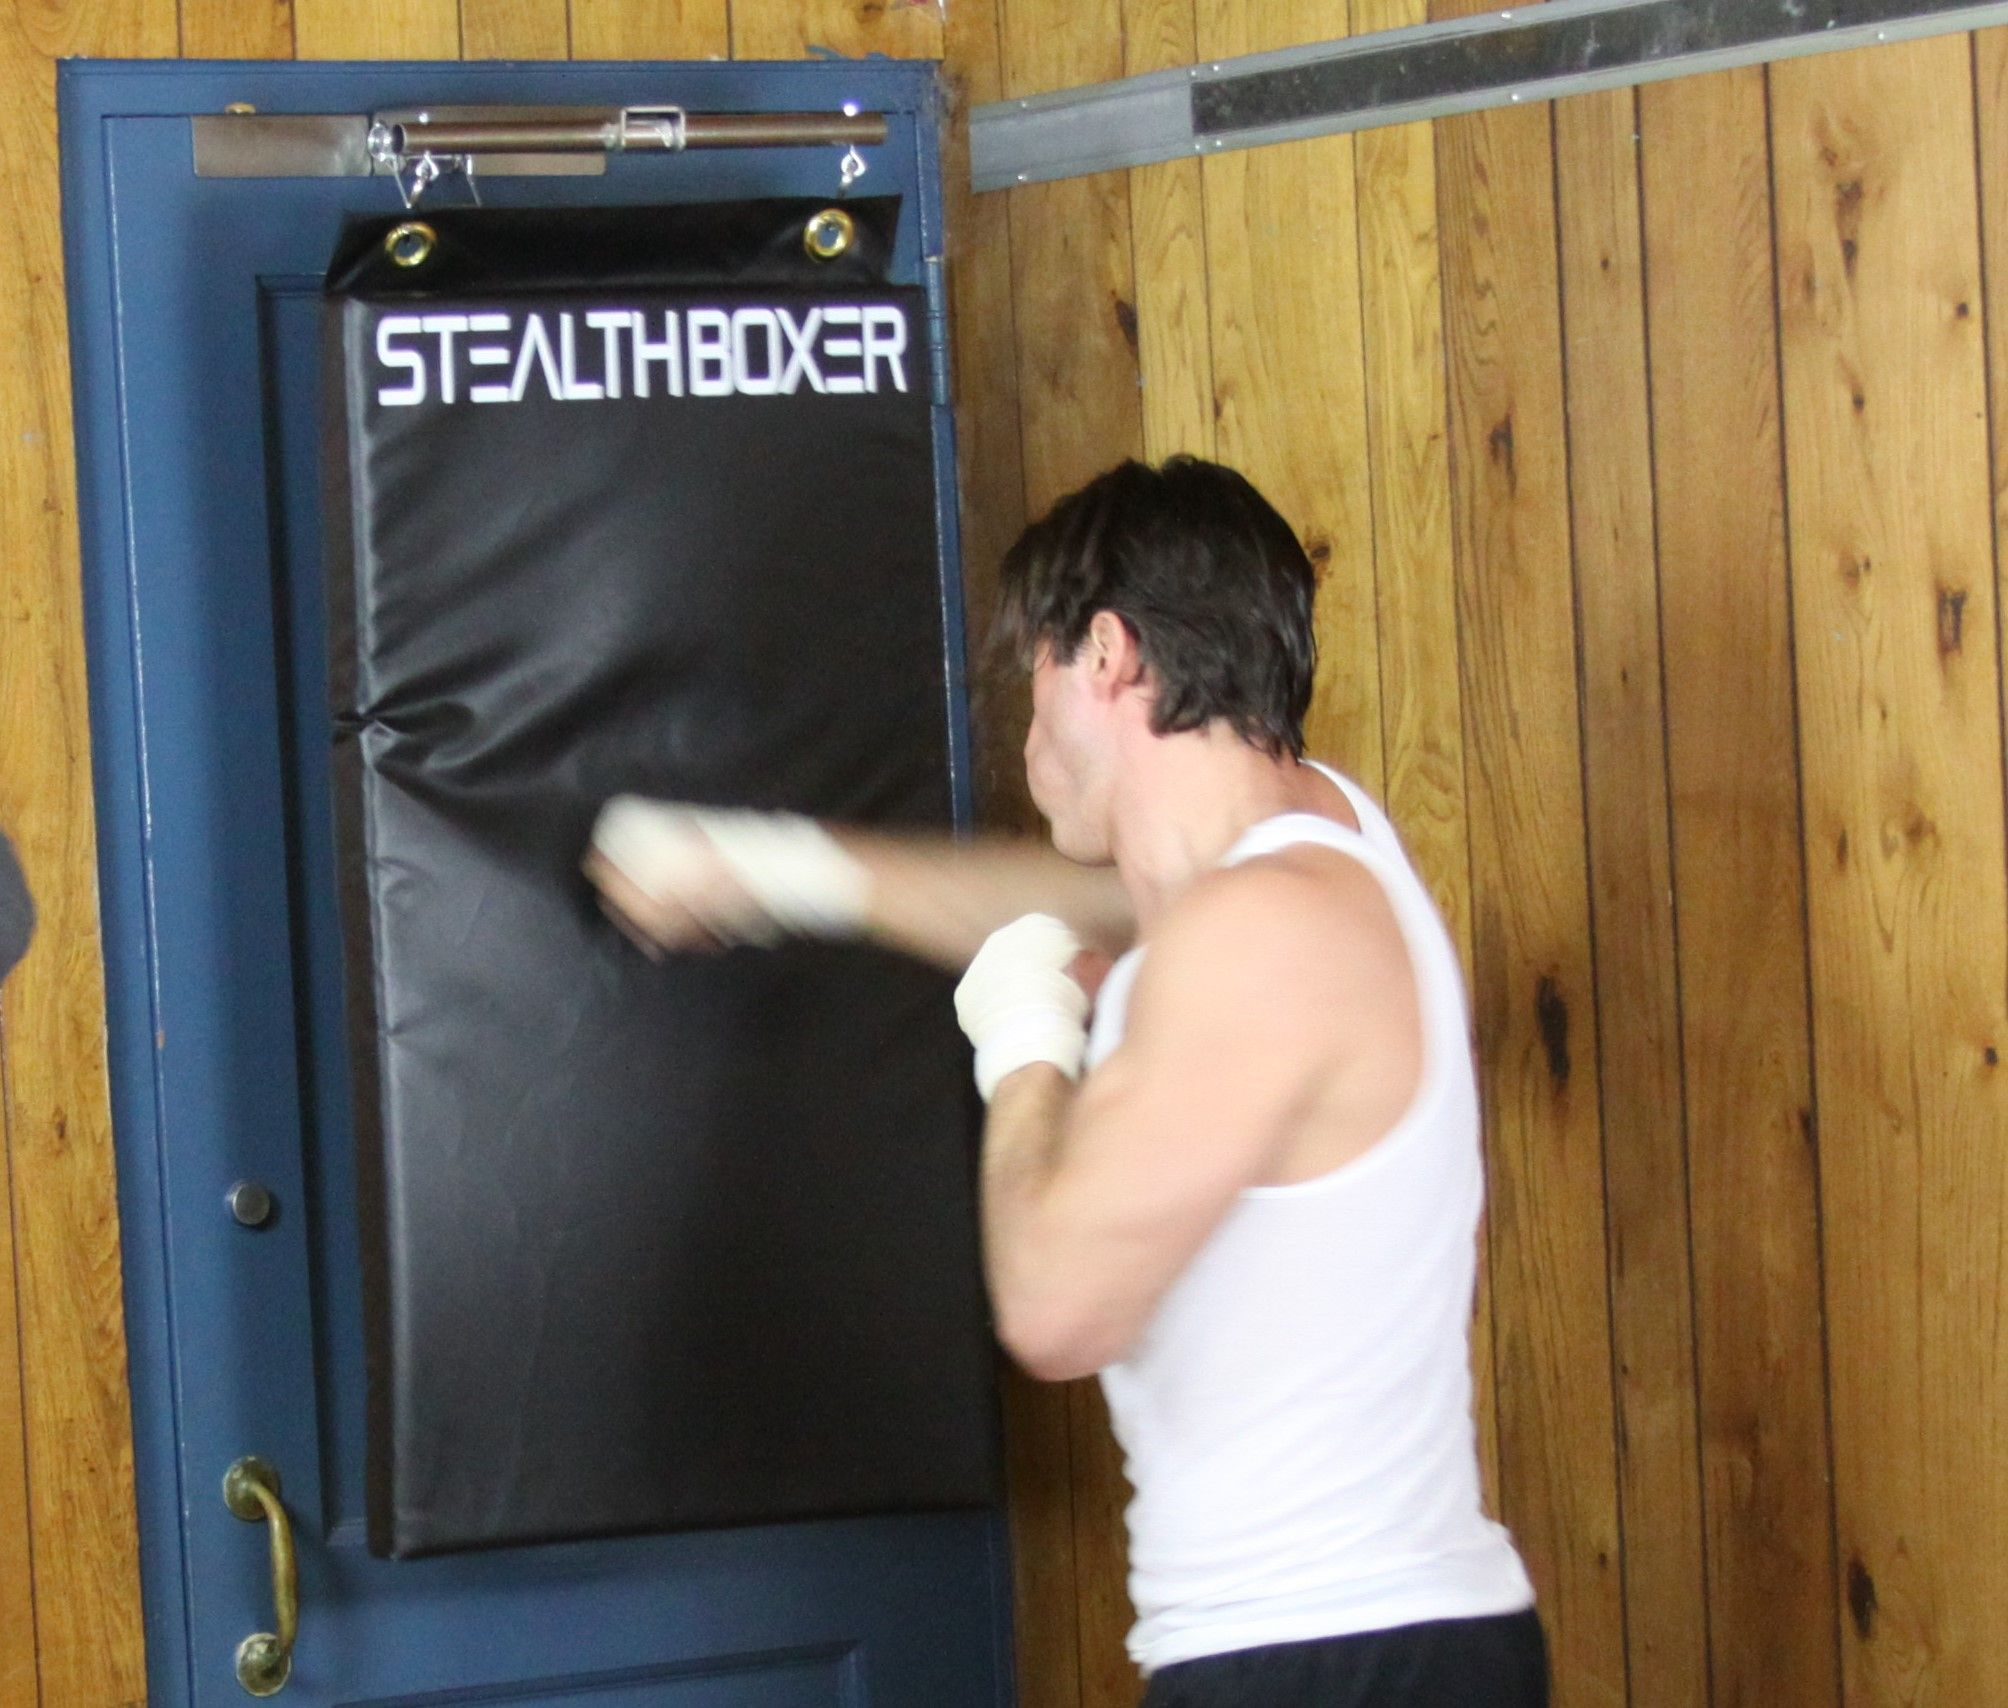 First Door Mounted Zero Footprint Punching Bag Brings The Benefits Of Boxing Workouts To Apartments College Dorms Homes And Offices